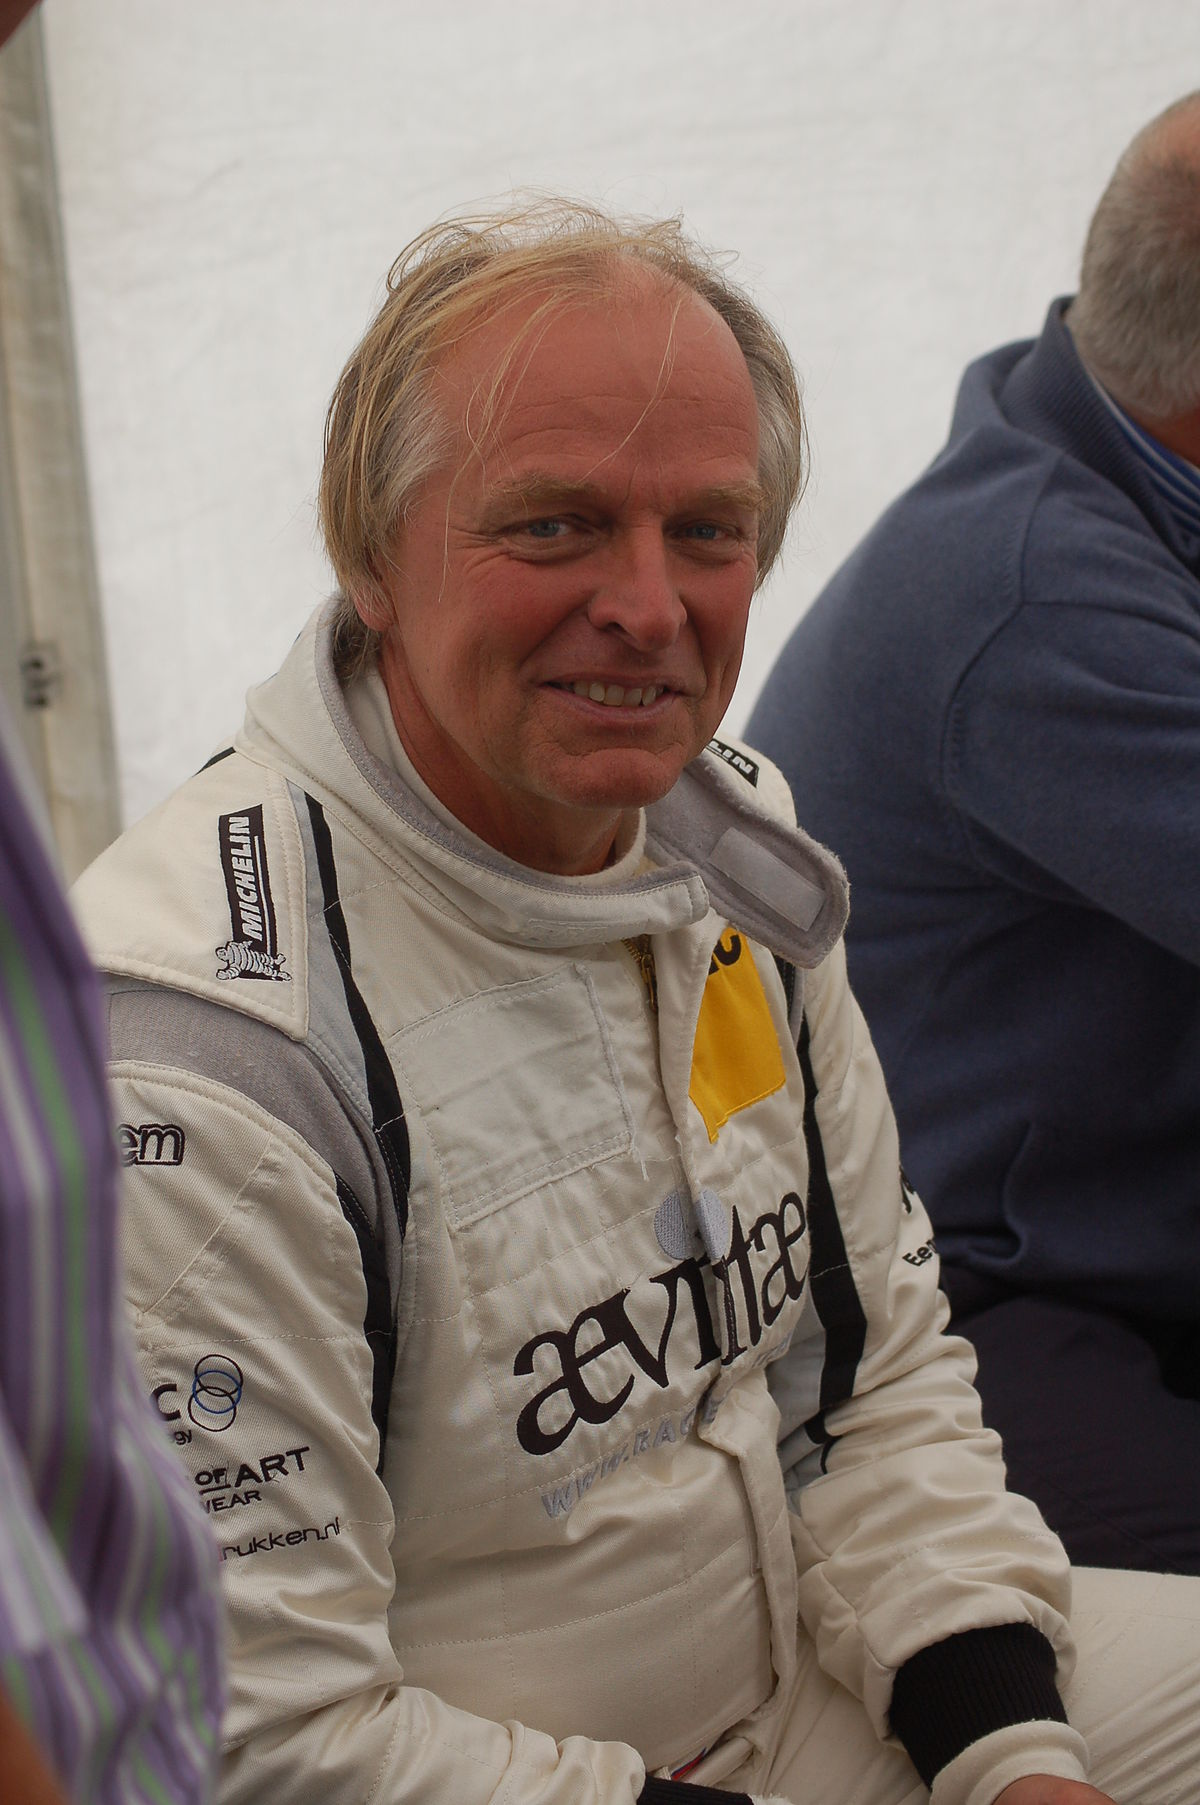 Michael Bleekemolen Wikipedia